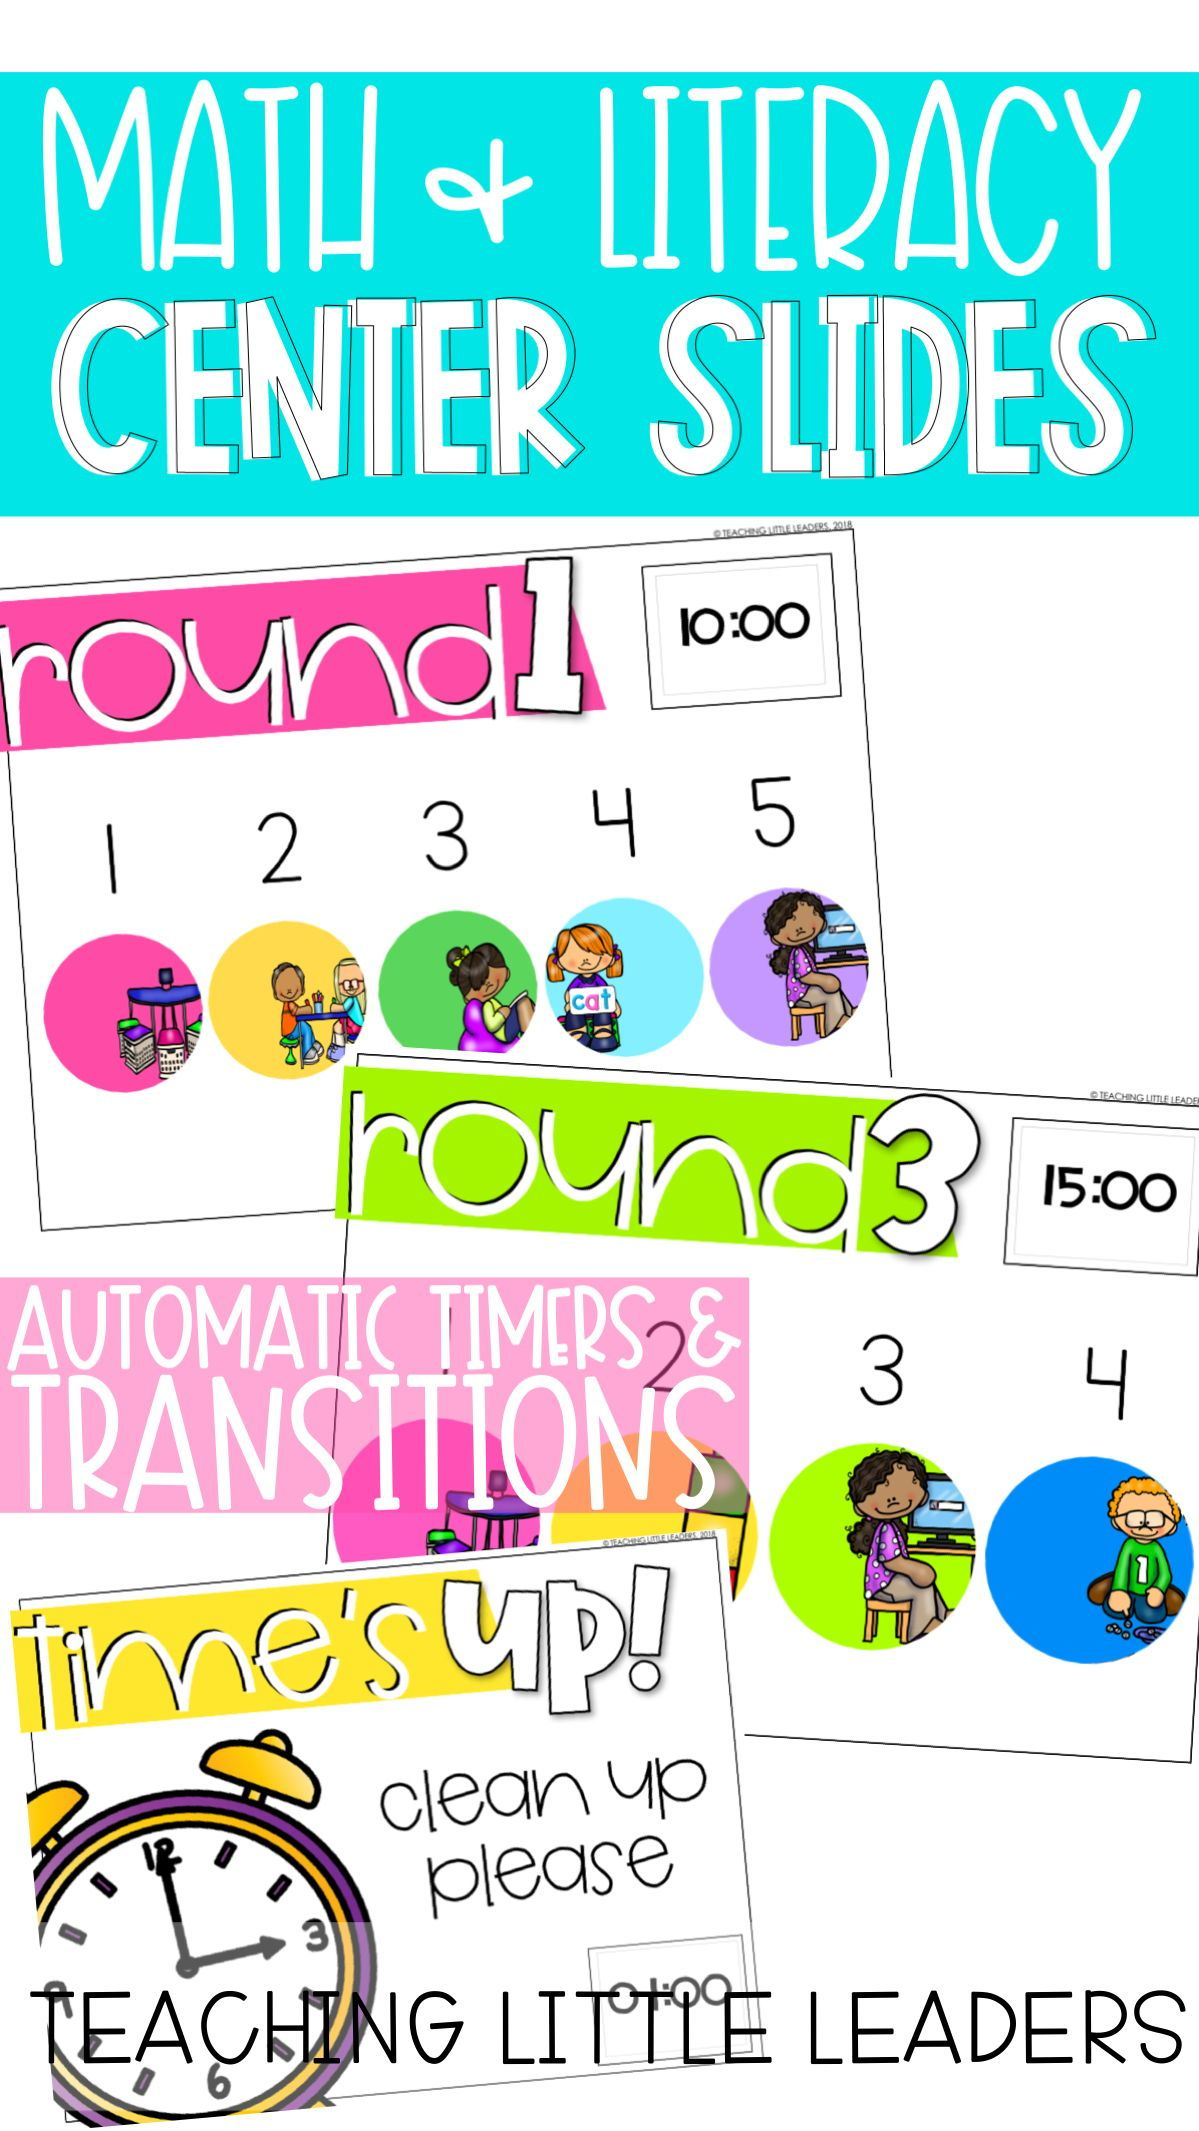 Math And Literacy Center Slides Bundle Editable And With Automatic Timers